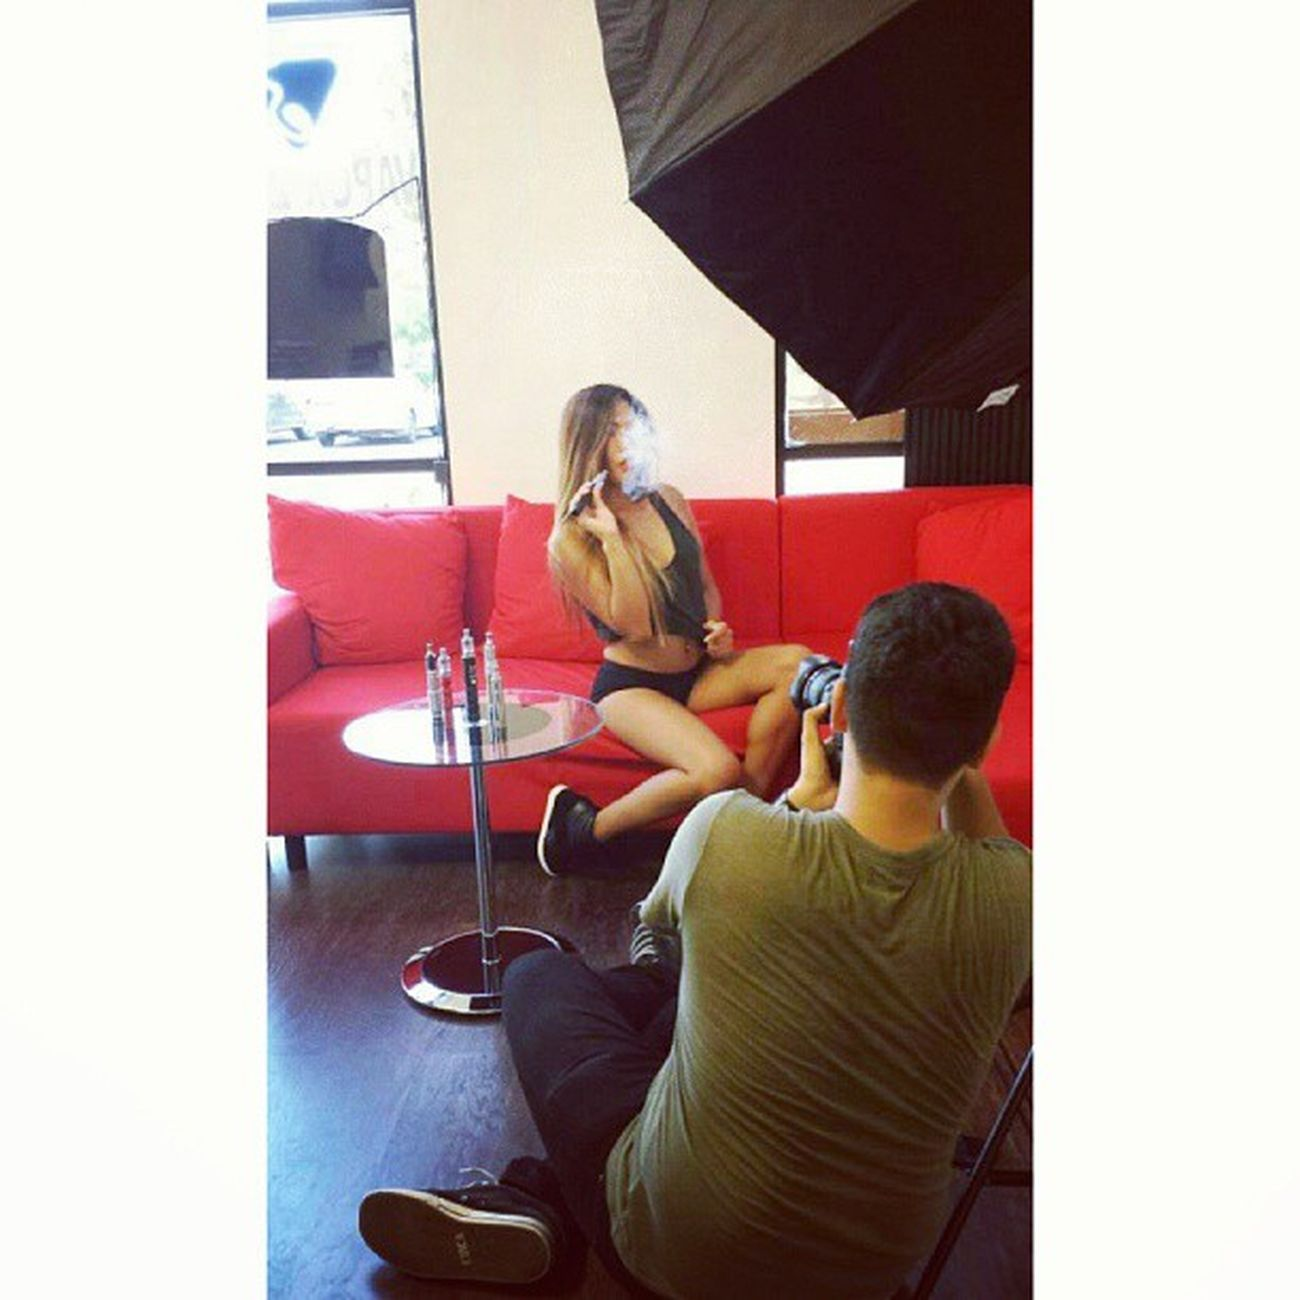 Todays shoot, hit me up to shoot for your shop/business. #vapes #vape #ocvapers #photoshoot #model #hitmeup #freeforbooking #business #asiangirl #cool #pauline #flash #oc #orangecounty #job #myjob #vaping #shop #smoke #smokefree #nicotinefree #epphotography